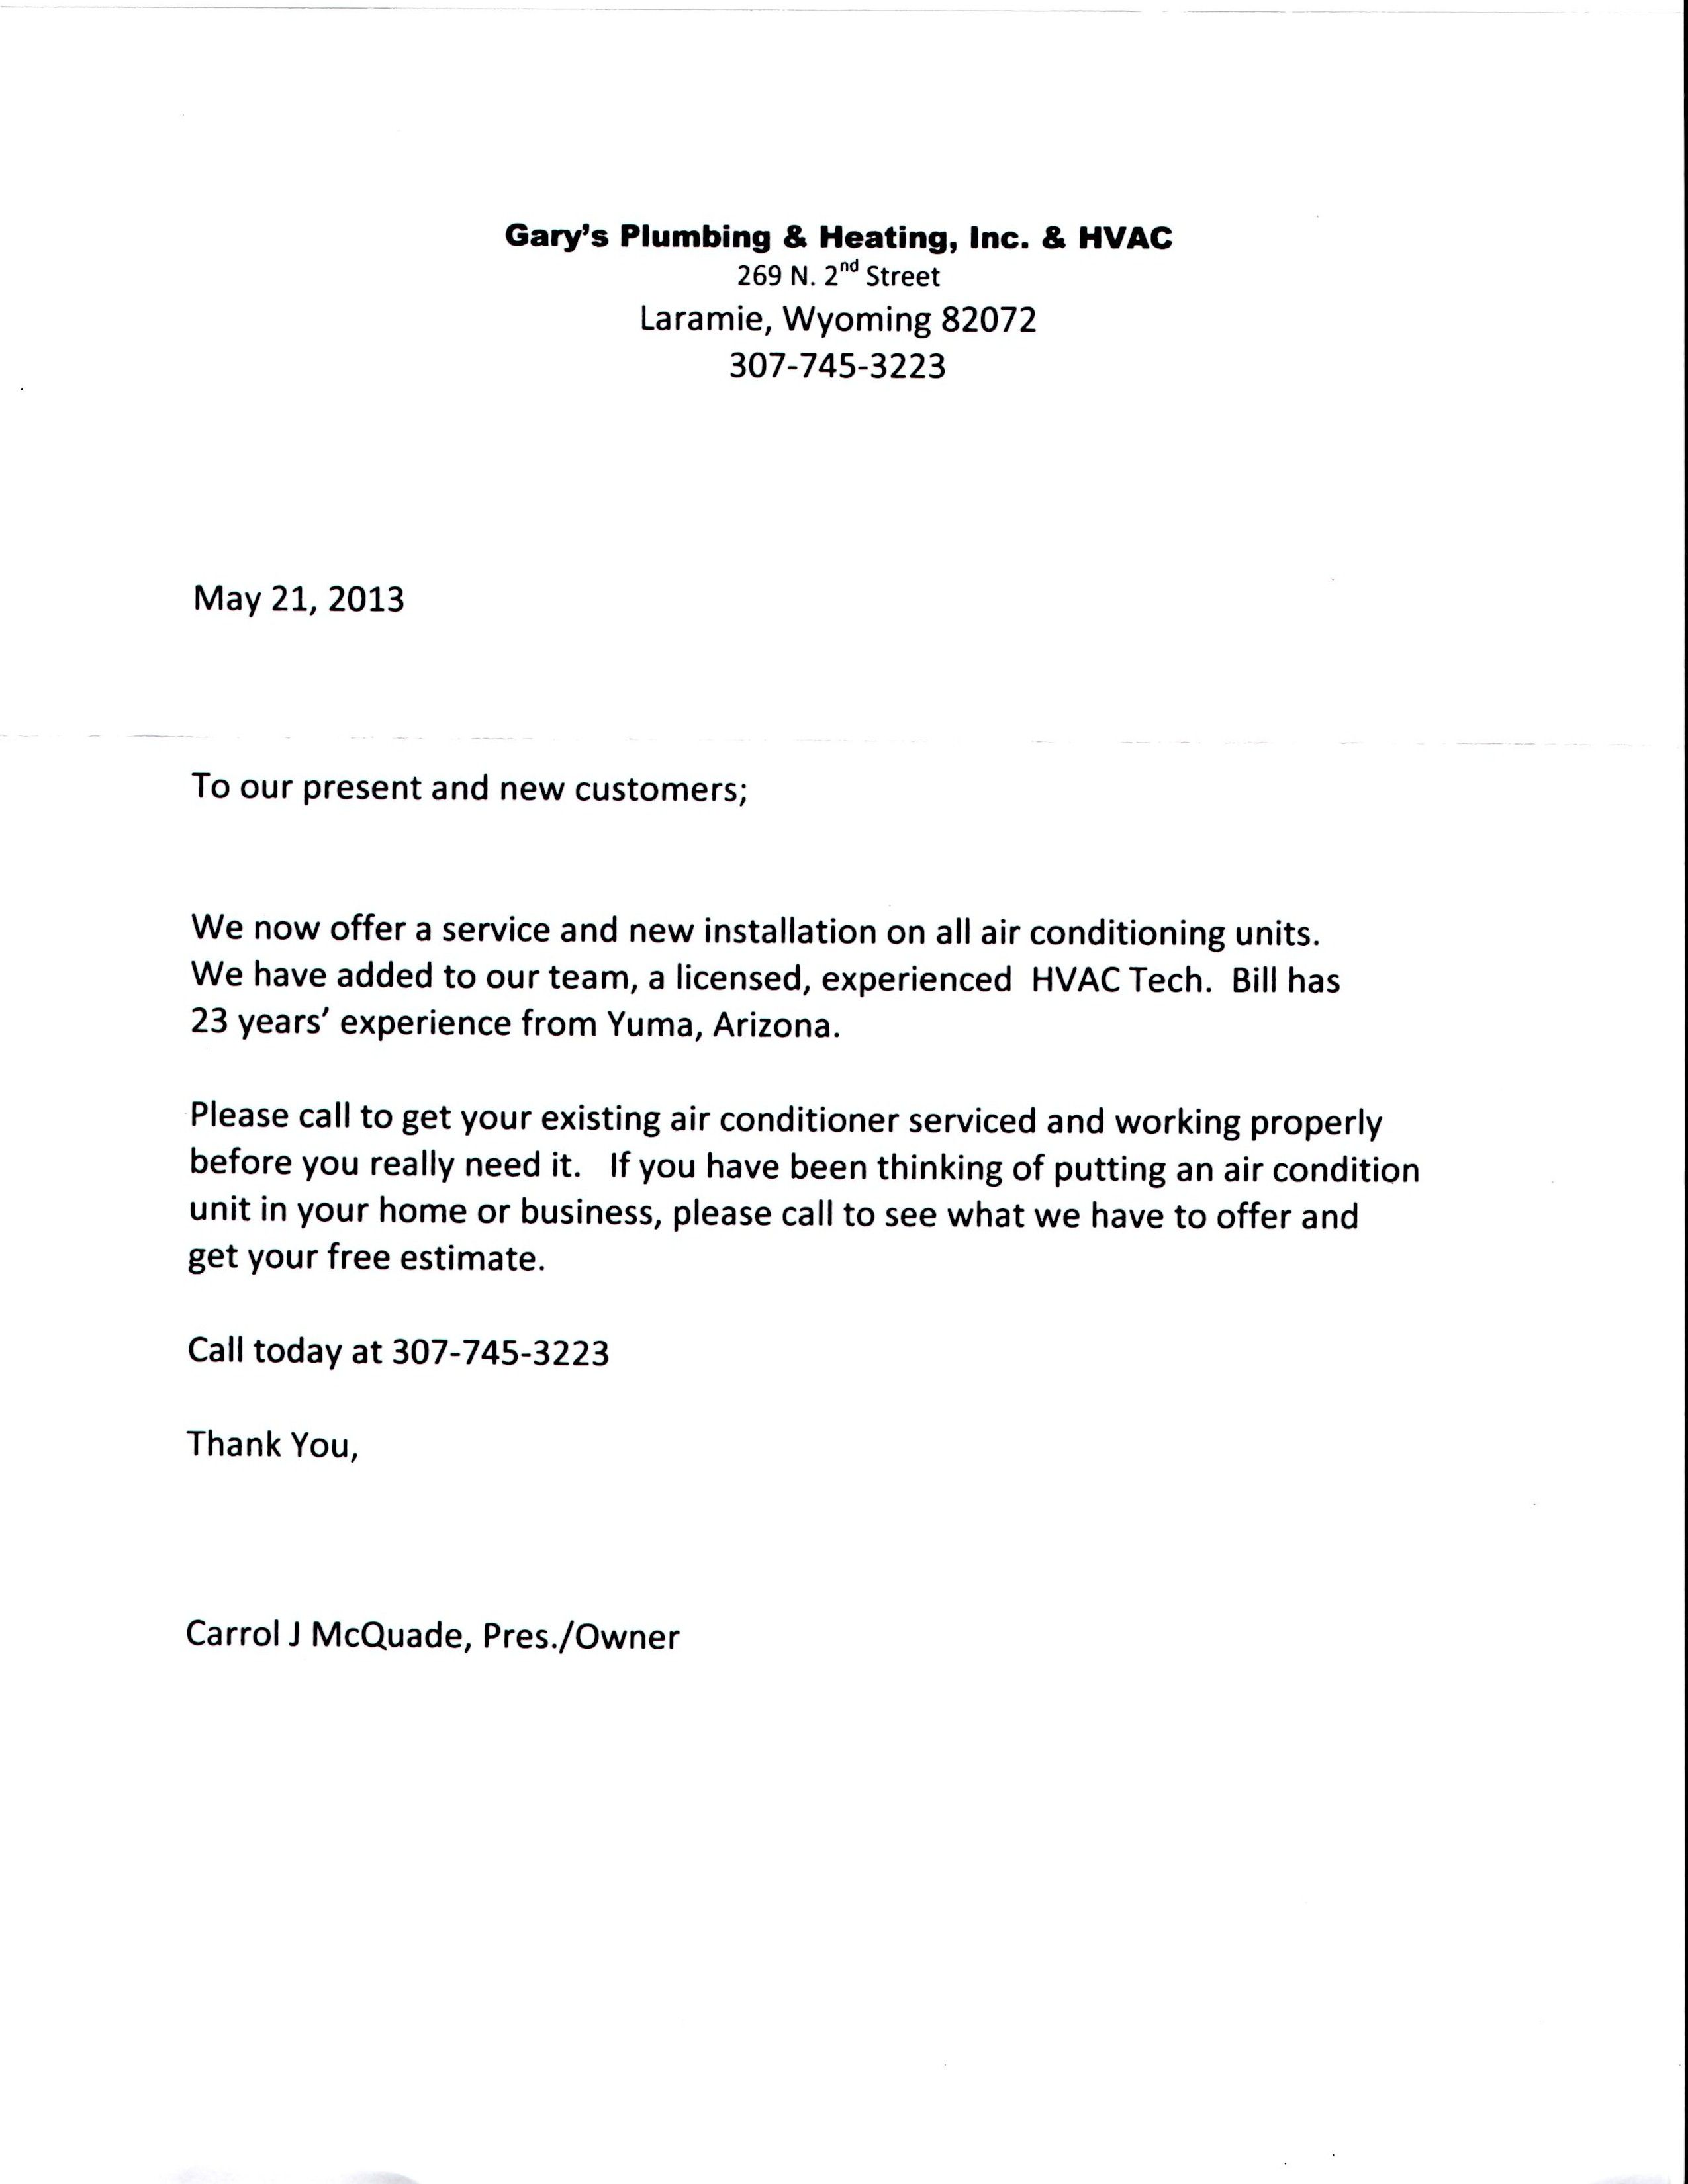 Letter to Customers Bill to the Team! HVAC